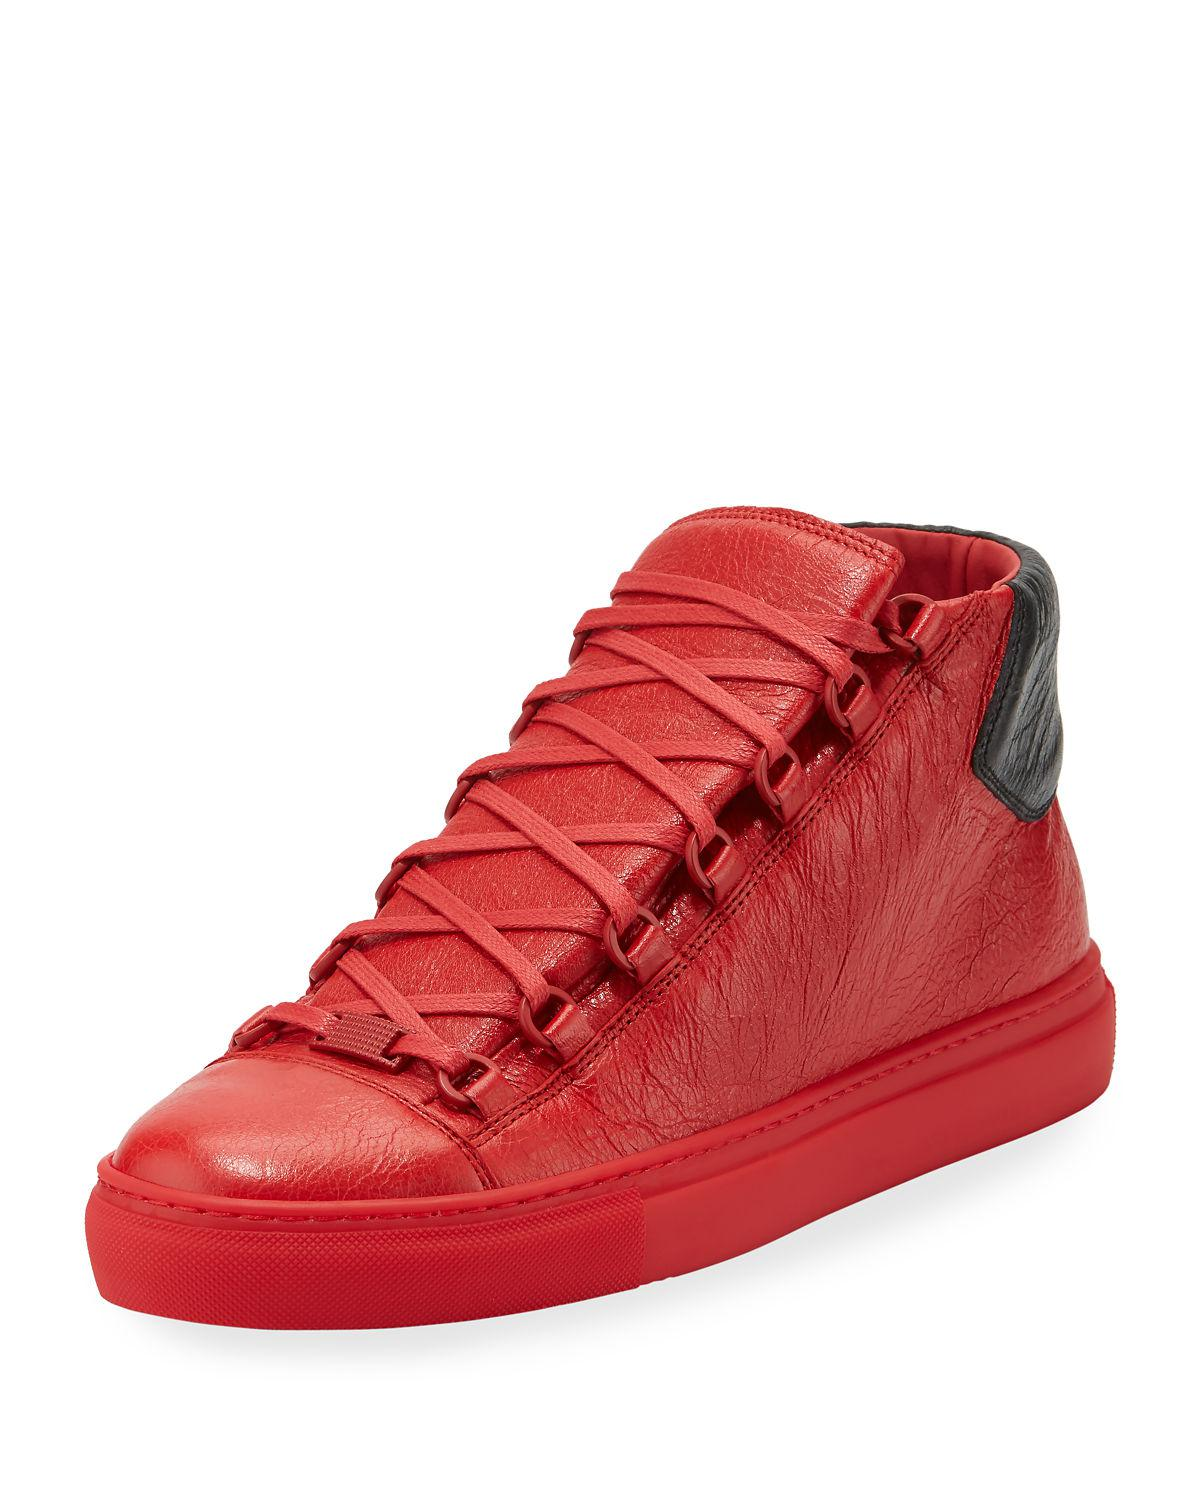 3cc8ec1a01f61 Balenciaga Men's Arena Leather Mid-top Sneaker in Red for Men - Lyst